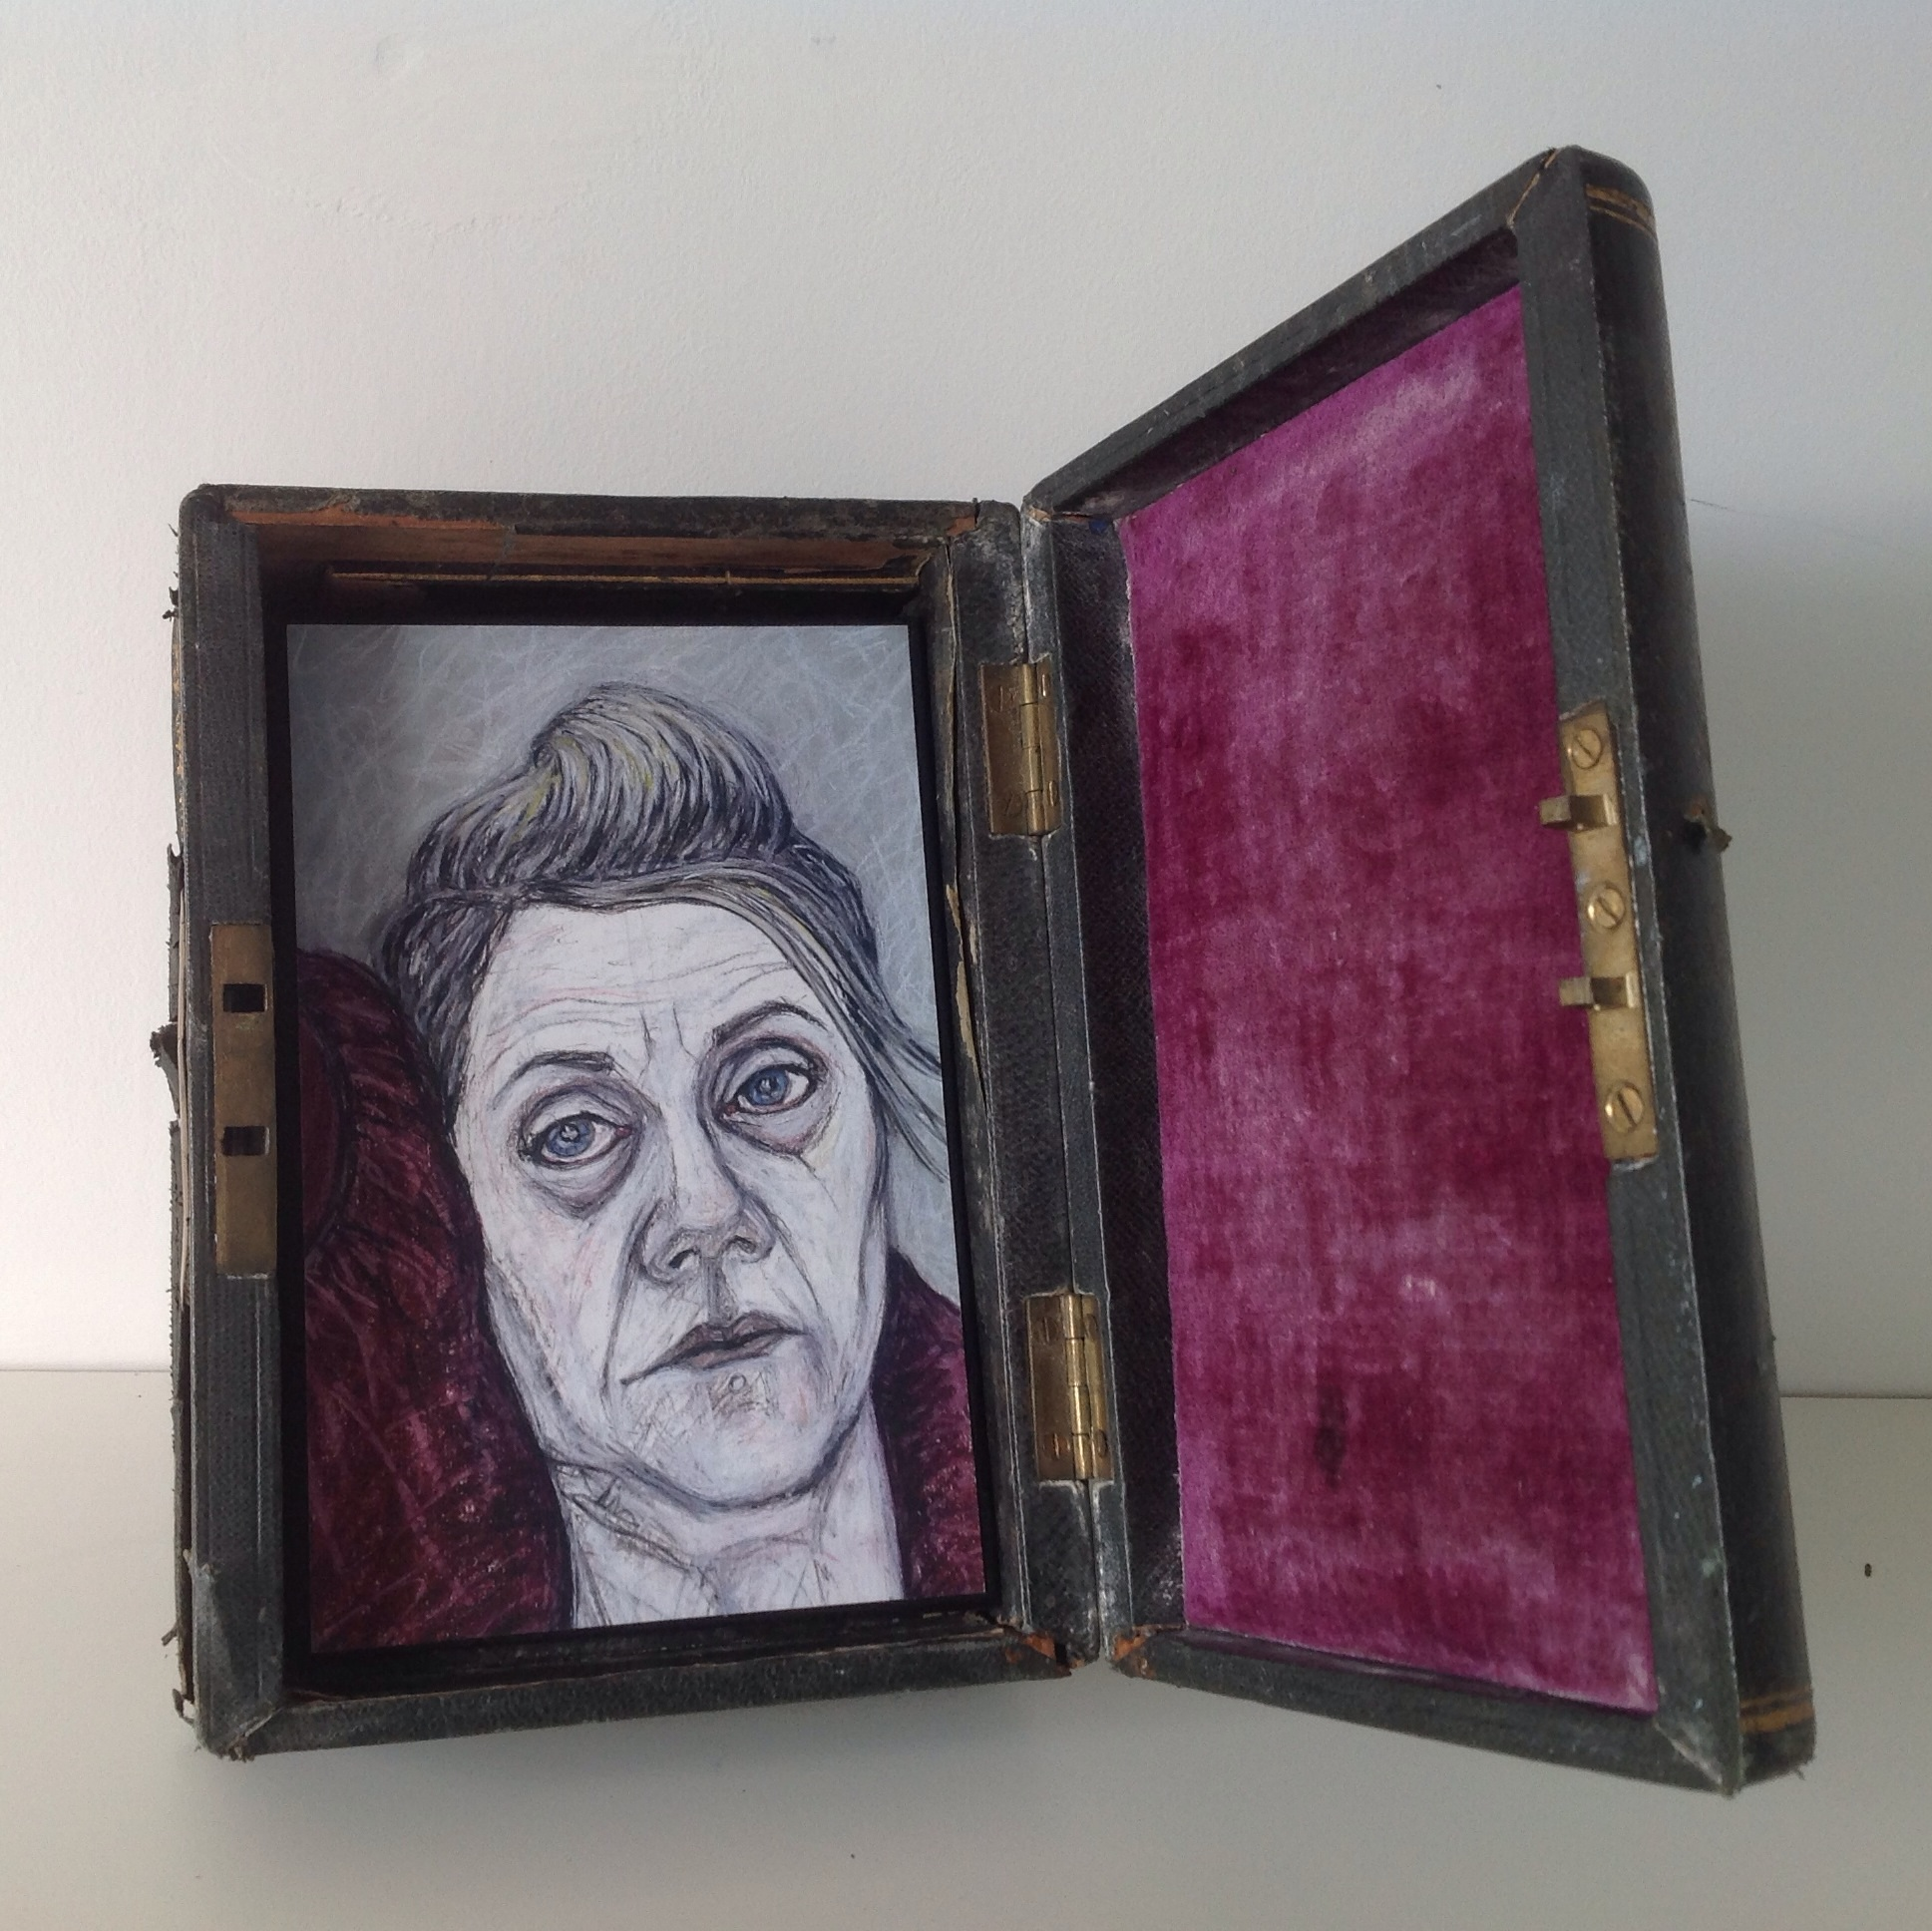 Reliquary. Artist book in a box.